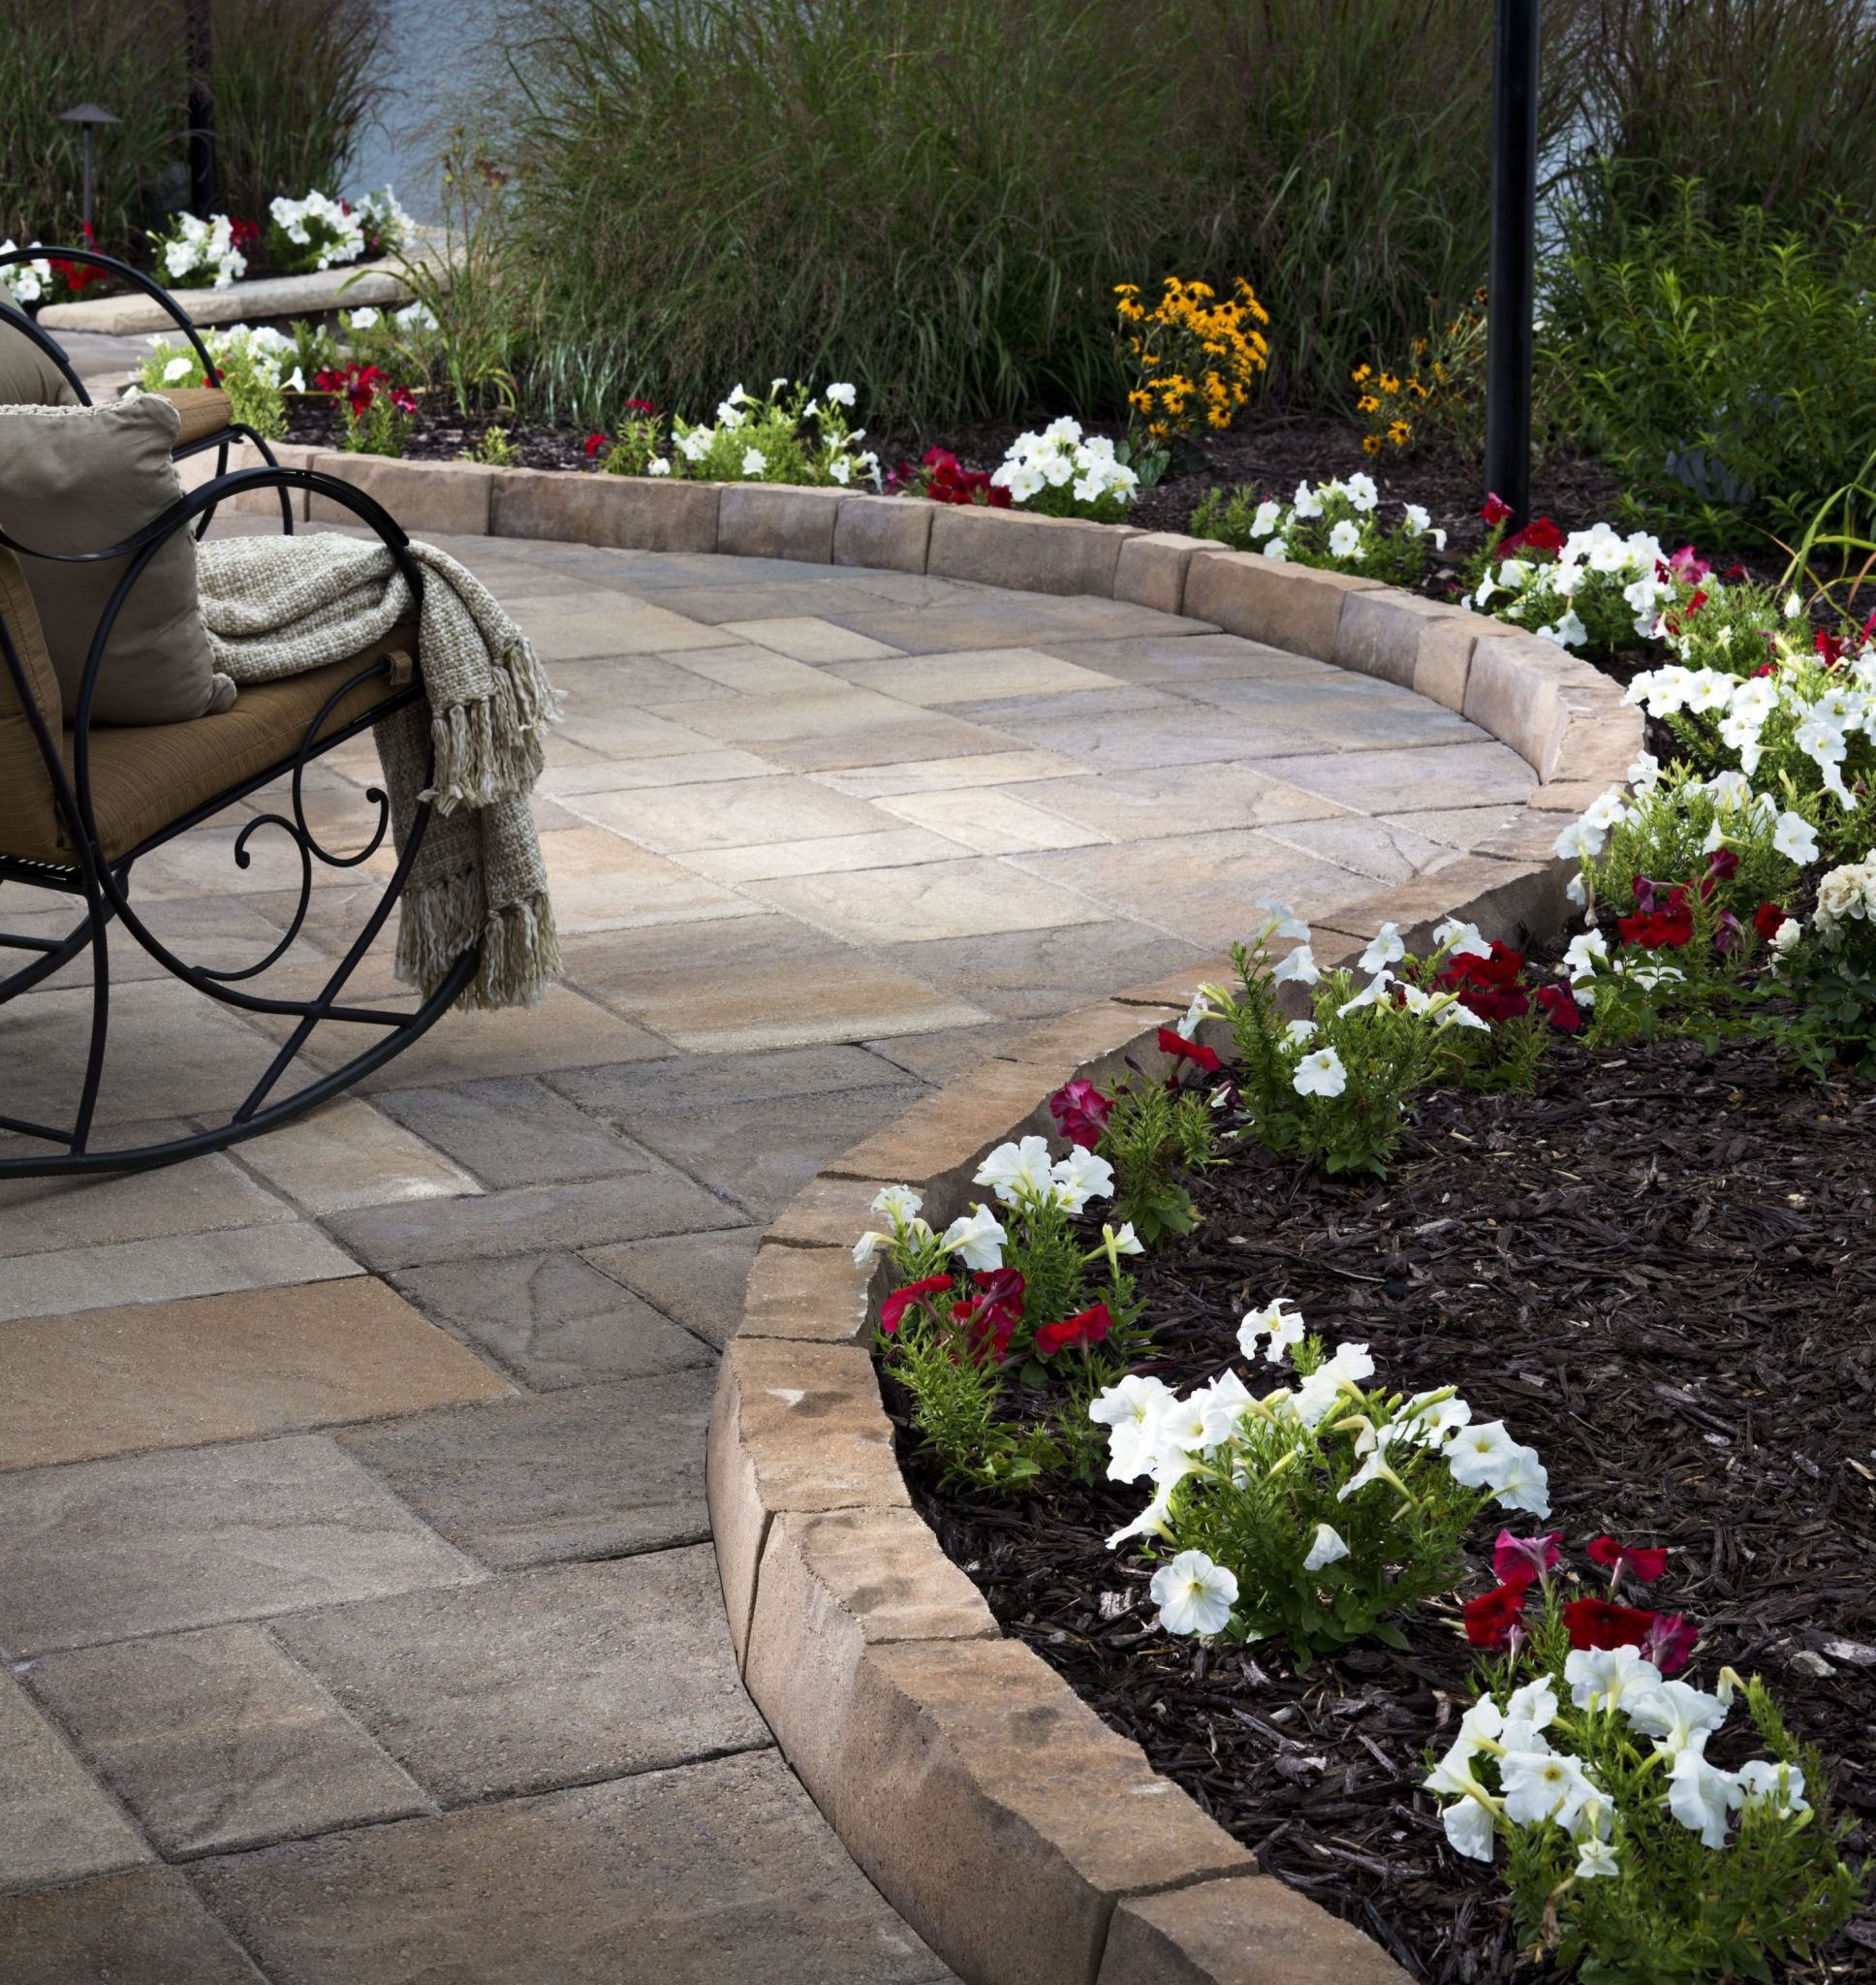 Add Mulch to Garden Beds